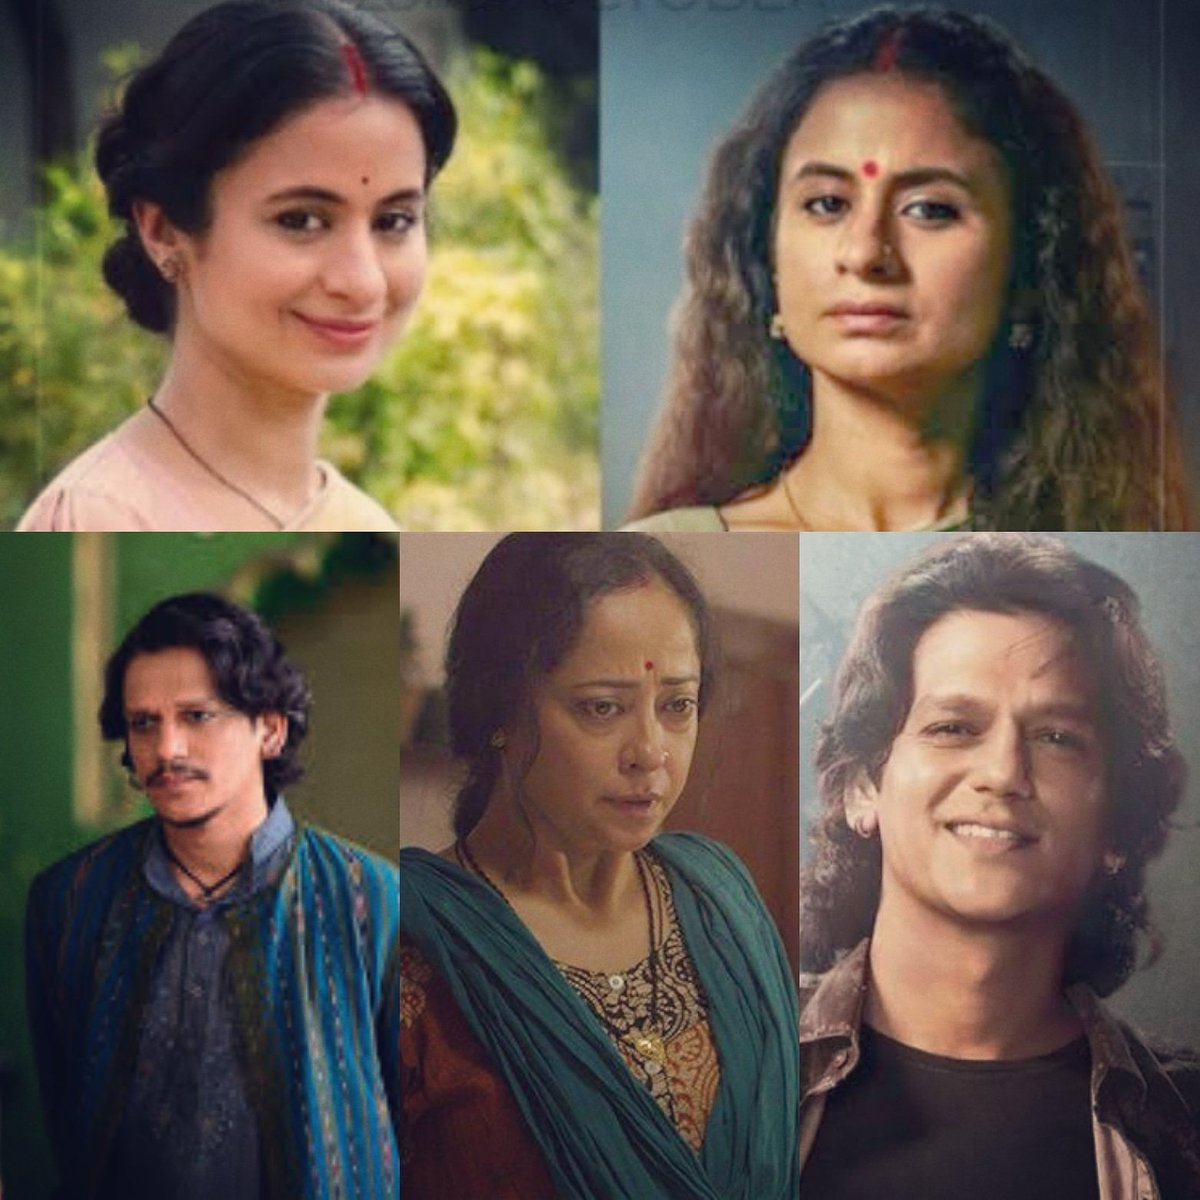 3 actors are common to #ASuitableBoy and #Mirzapur2 @RasikaDugal @MrVijayVarma & #SheebaChadha. That difference in their characterisation and performance is a mark of the flexibility & versatility that streaming platforms offer to artistes & viewers. @PrimeVideoIN @NetflixIndia